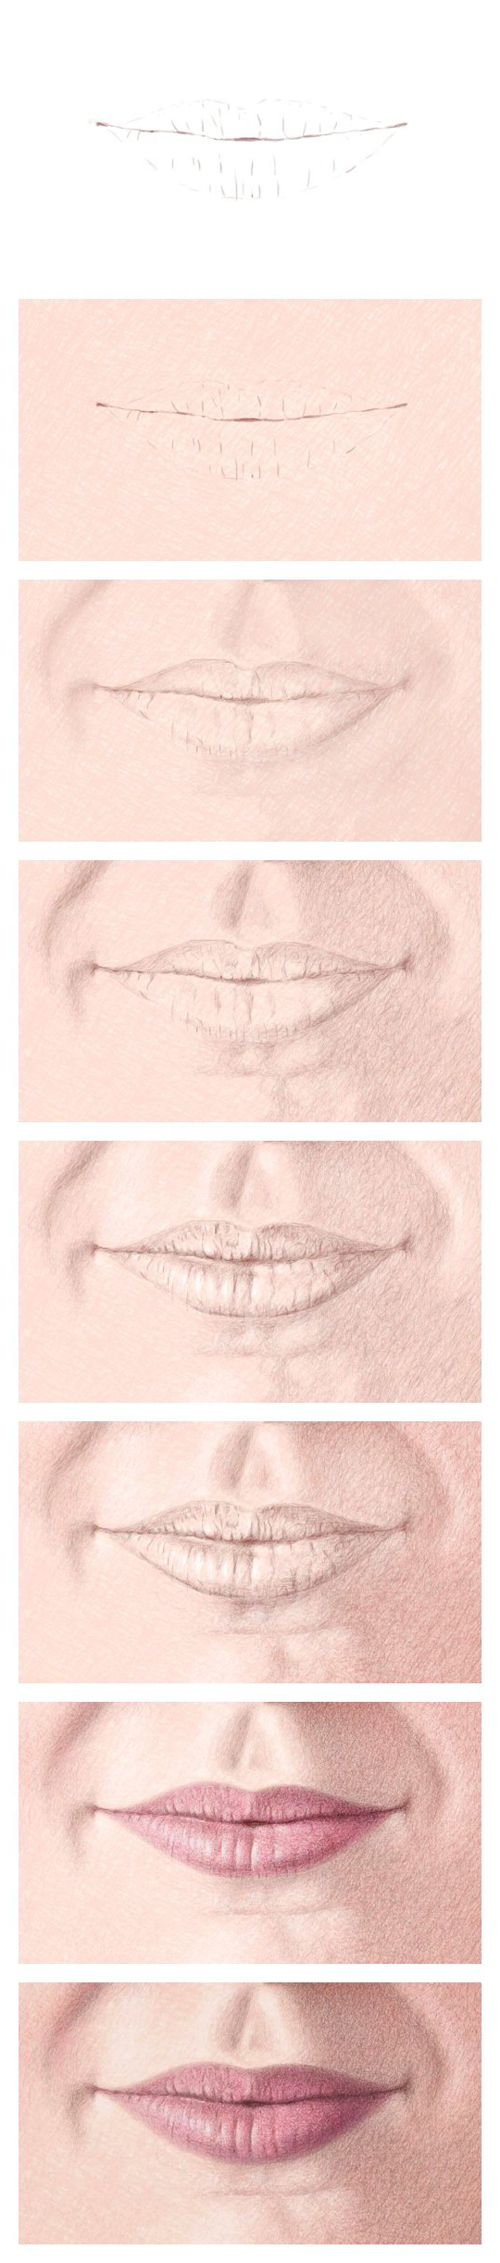 Color Pencil Portraits - How to Draw the Mouth